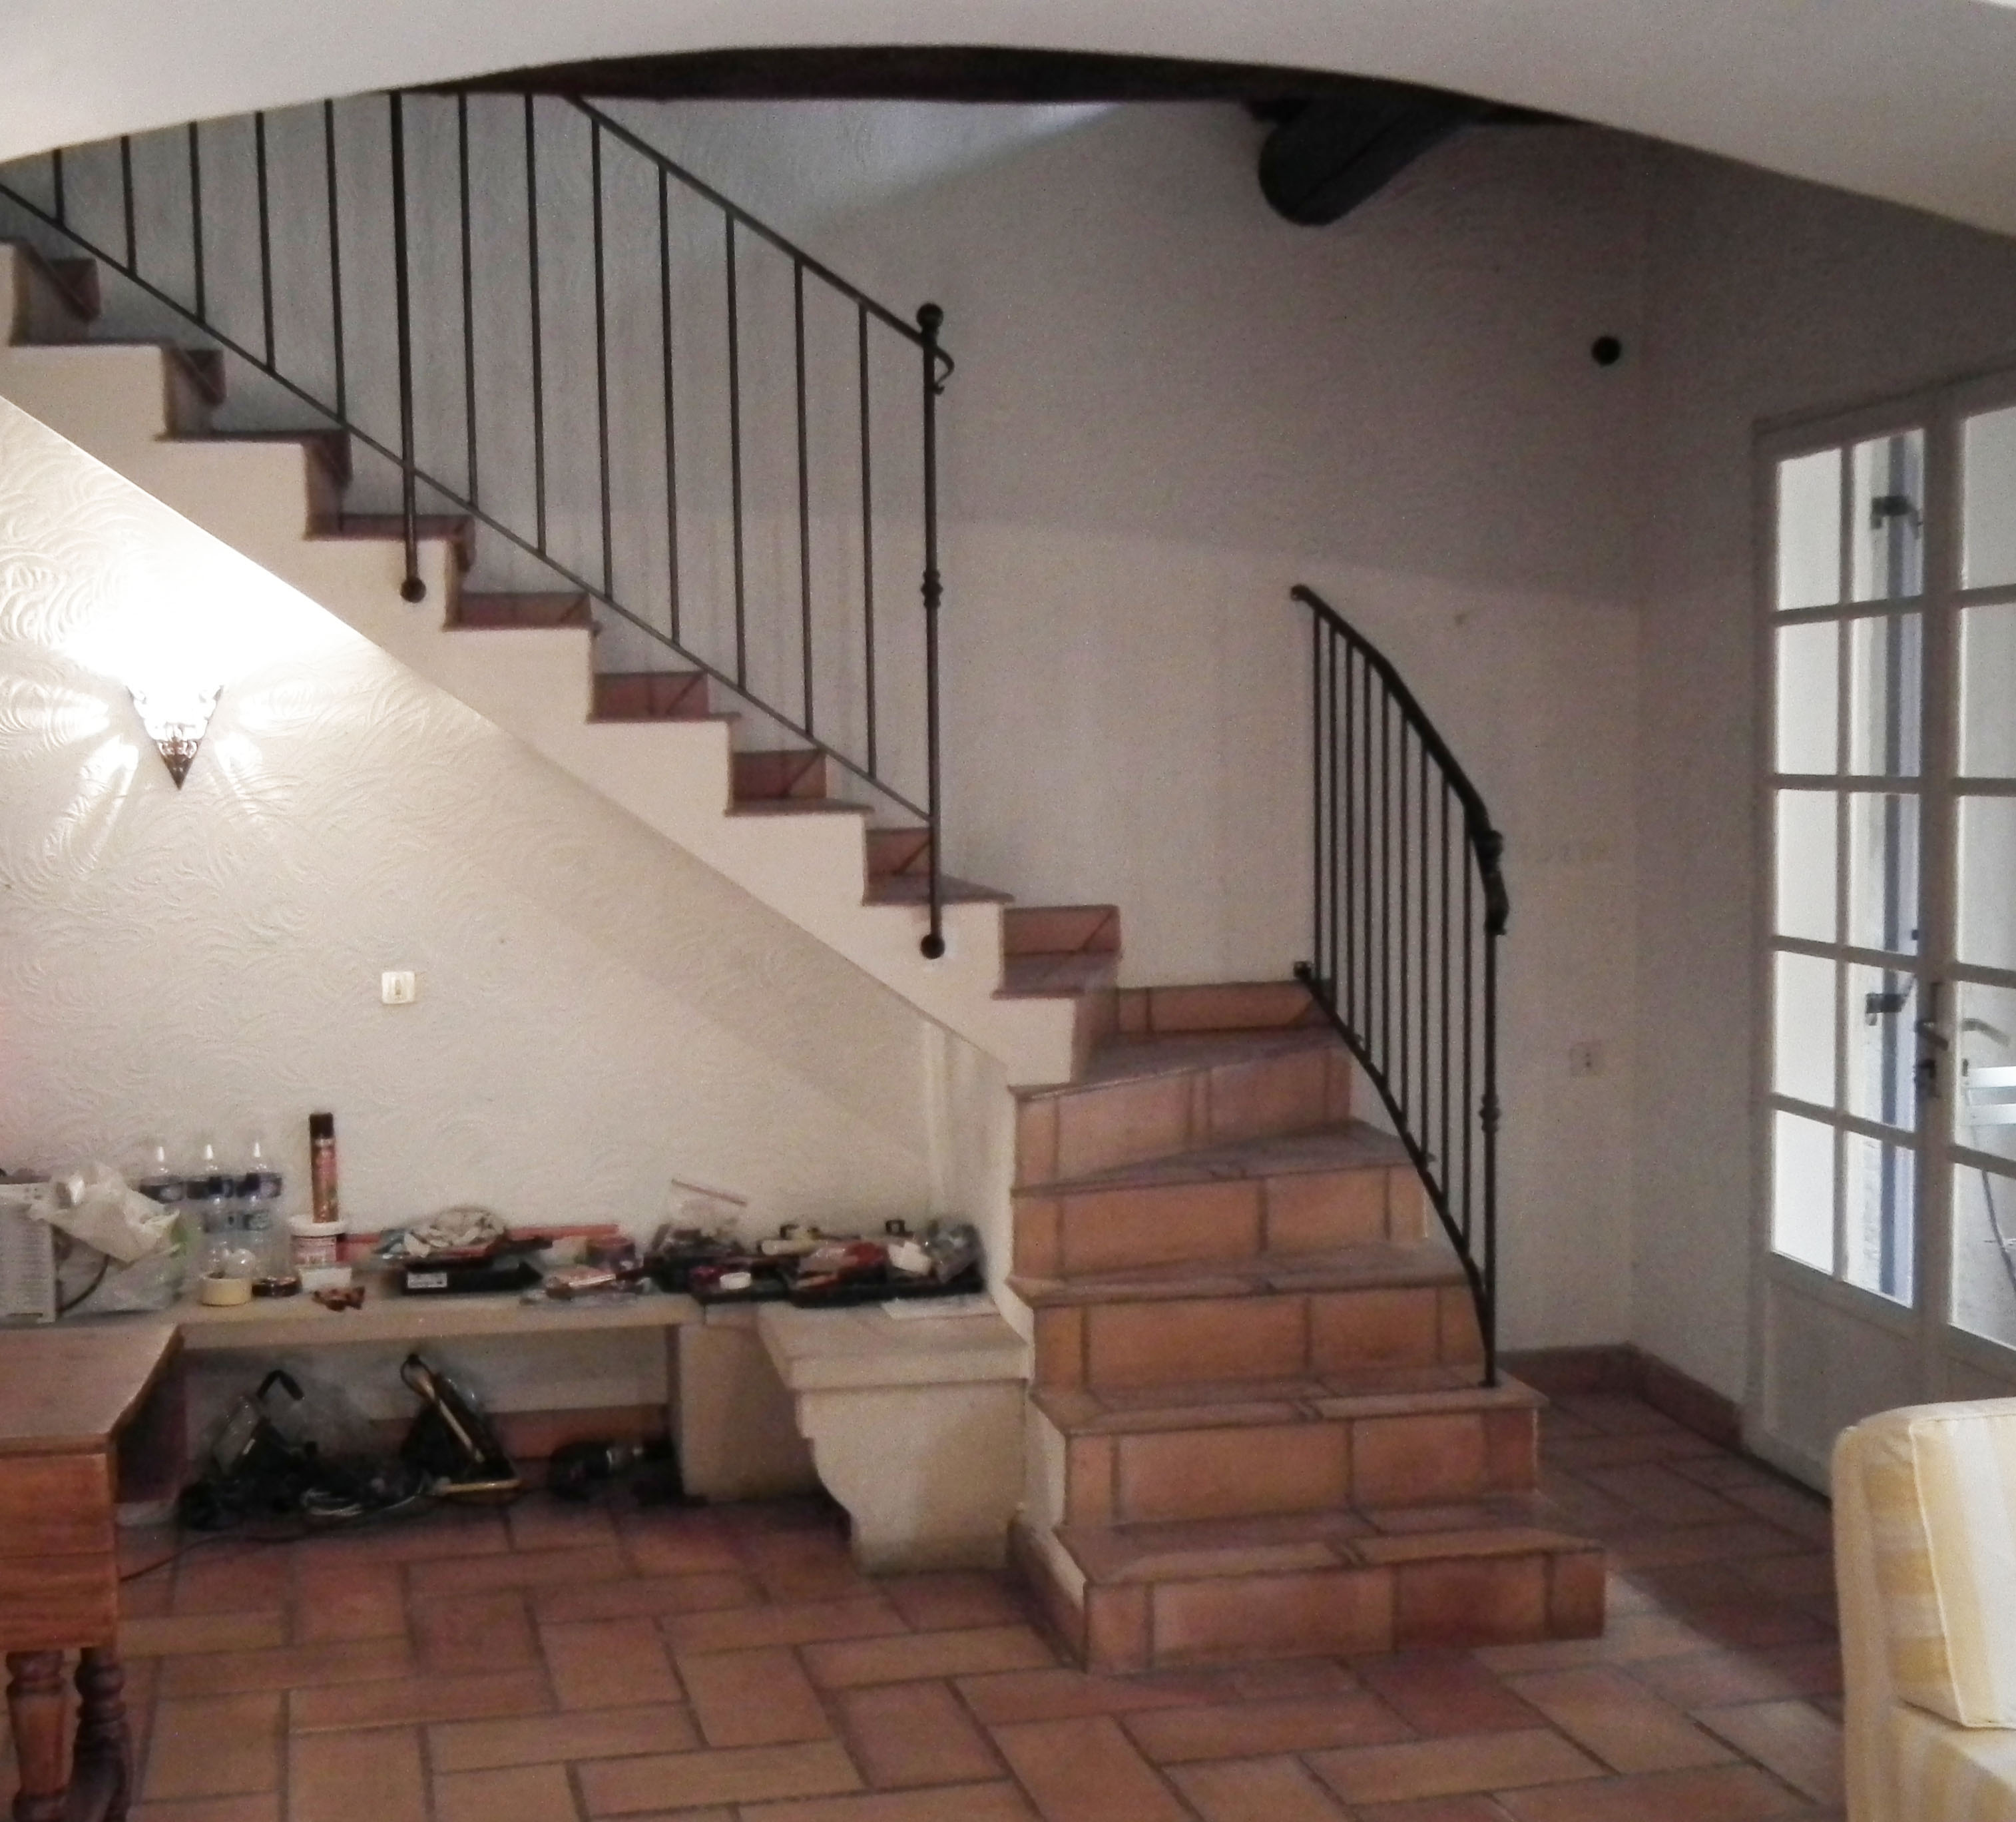 Chez mirabel a maison in provence page 3 - Stair designs ...